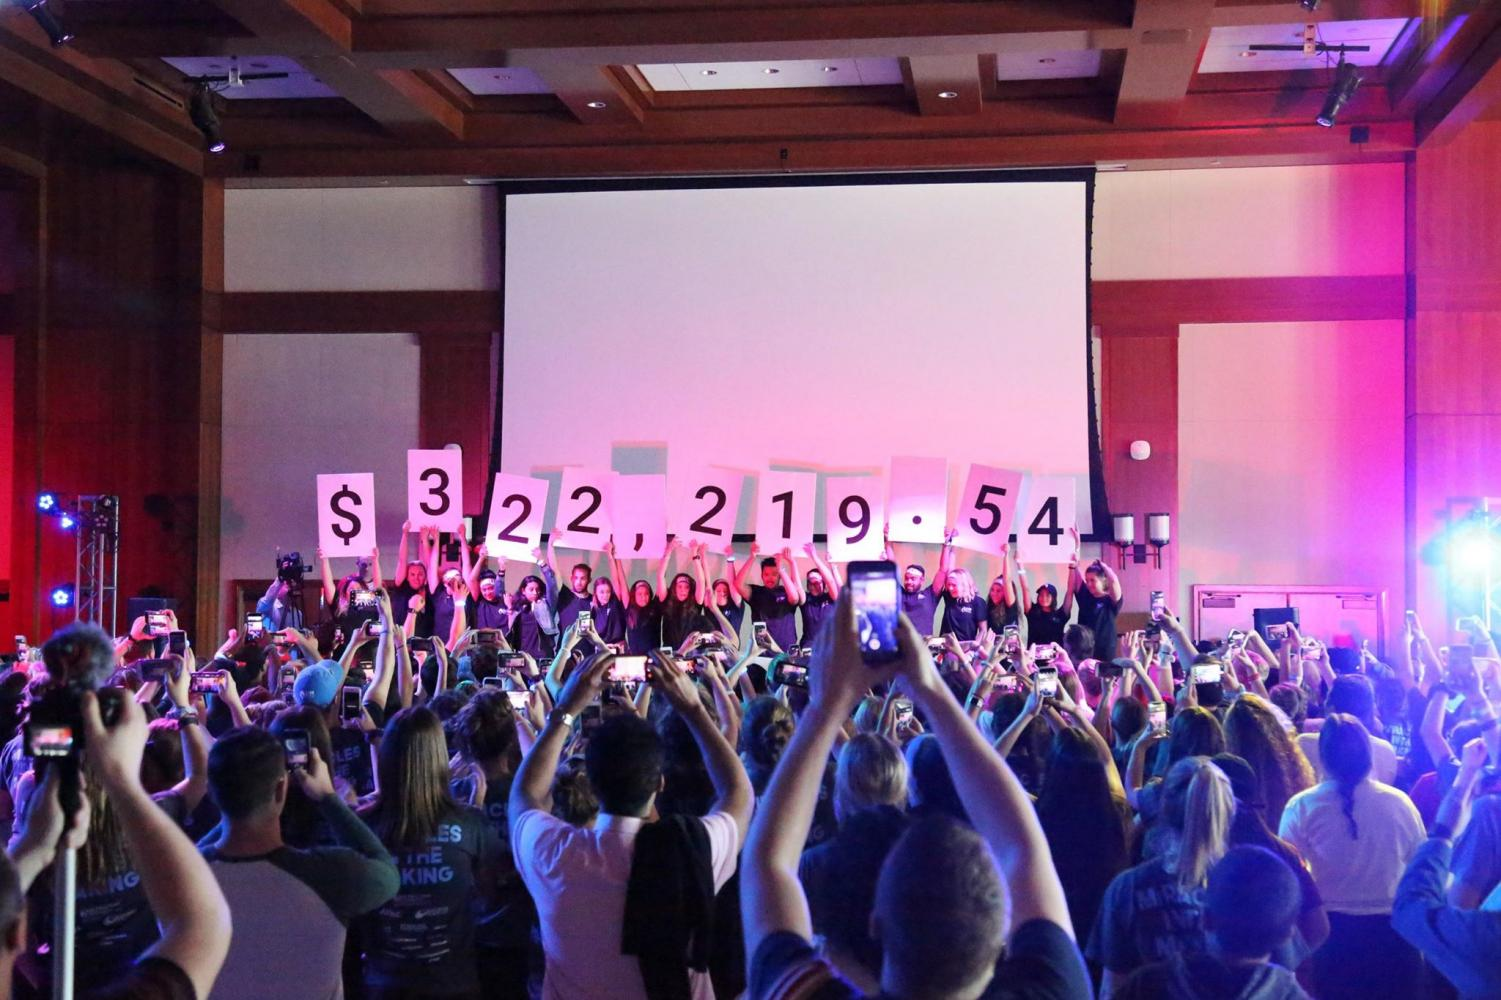 Dance Marathon at SDSU surpassed its fundraising goal of $321,000 on Saturday morning after 15 hours of dancing.